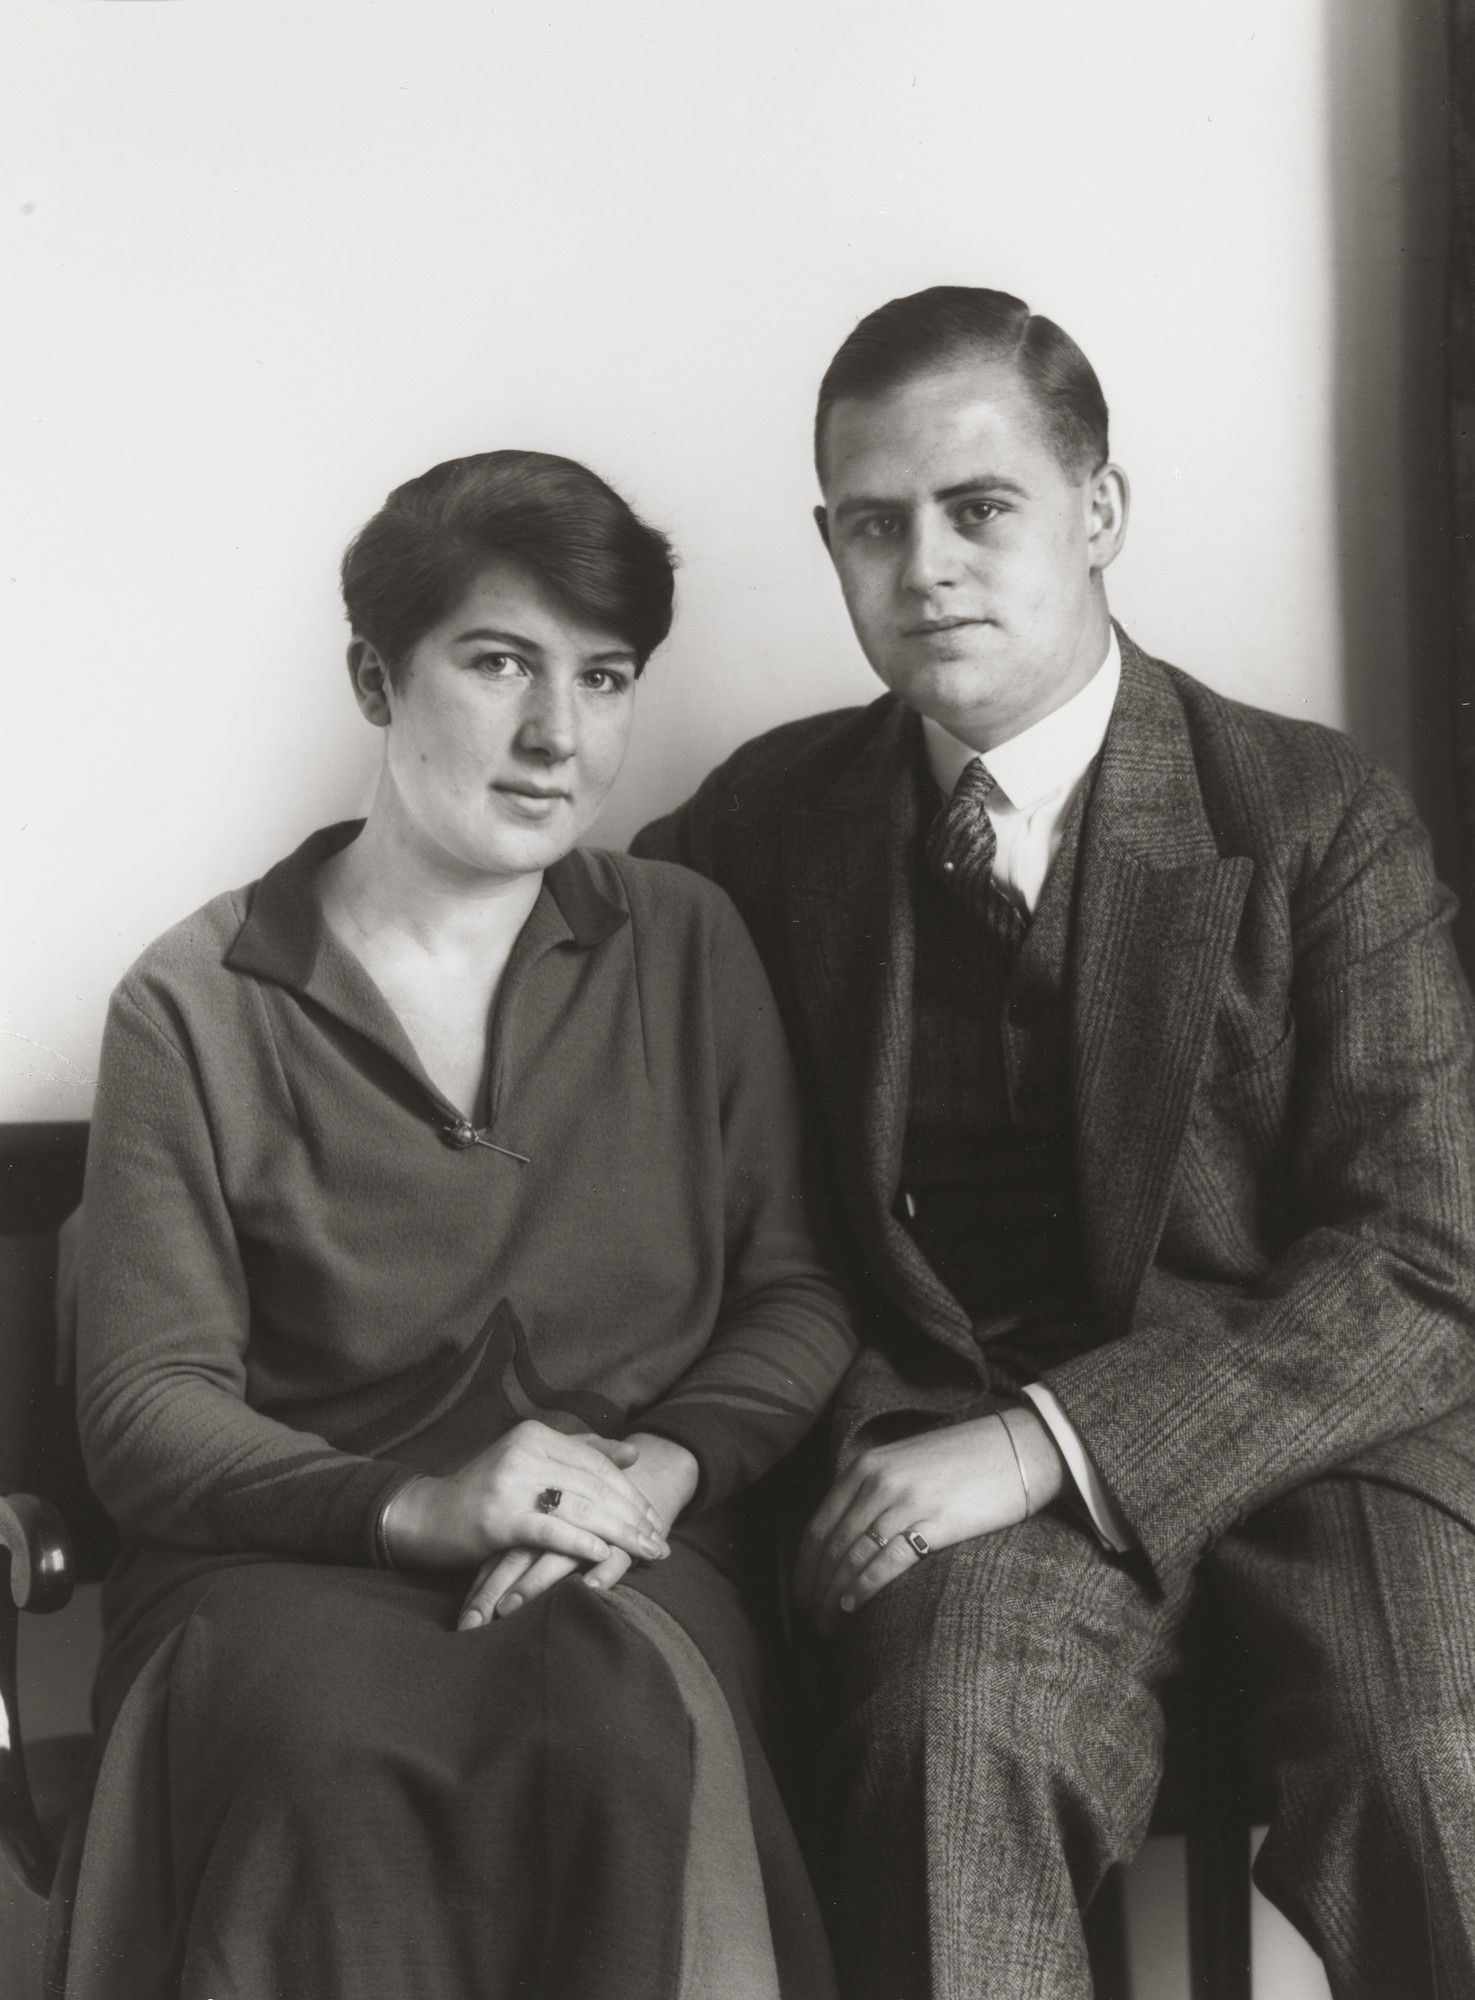 August Sander. Professional Middle-class Couple. 1927